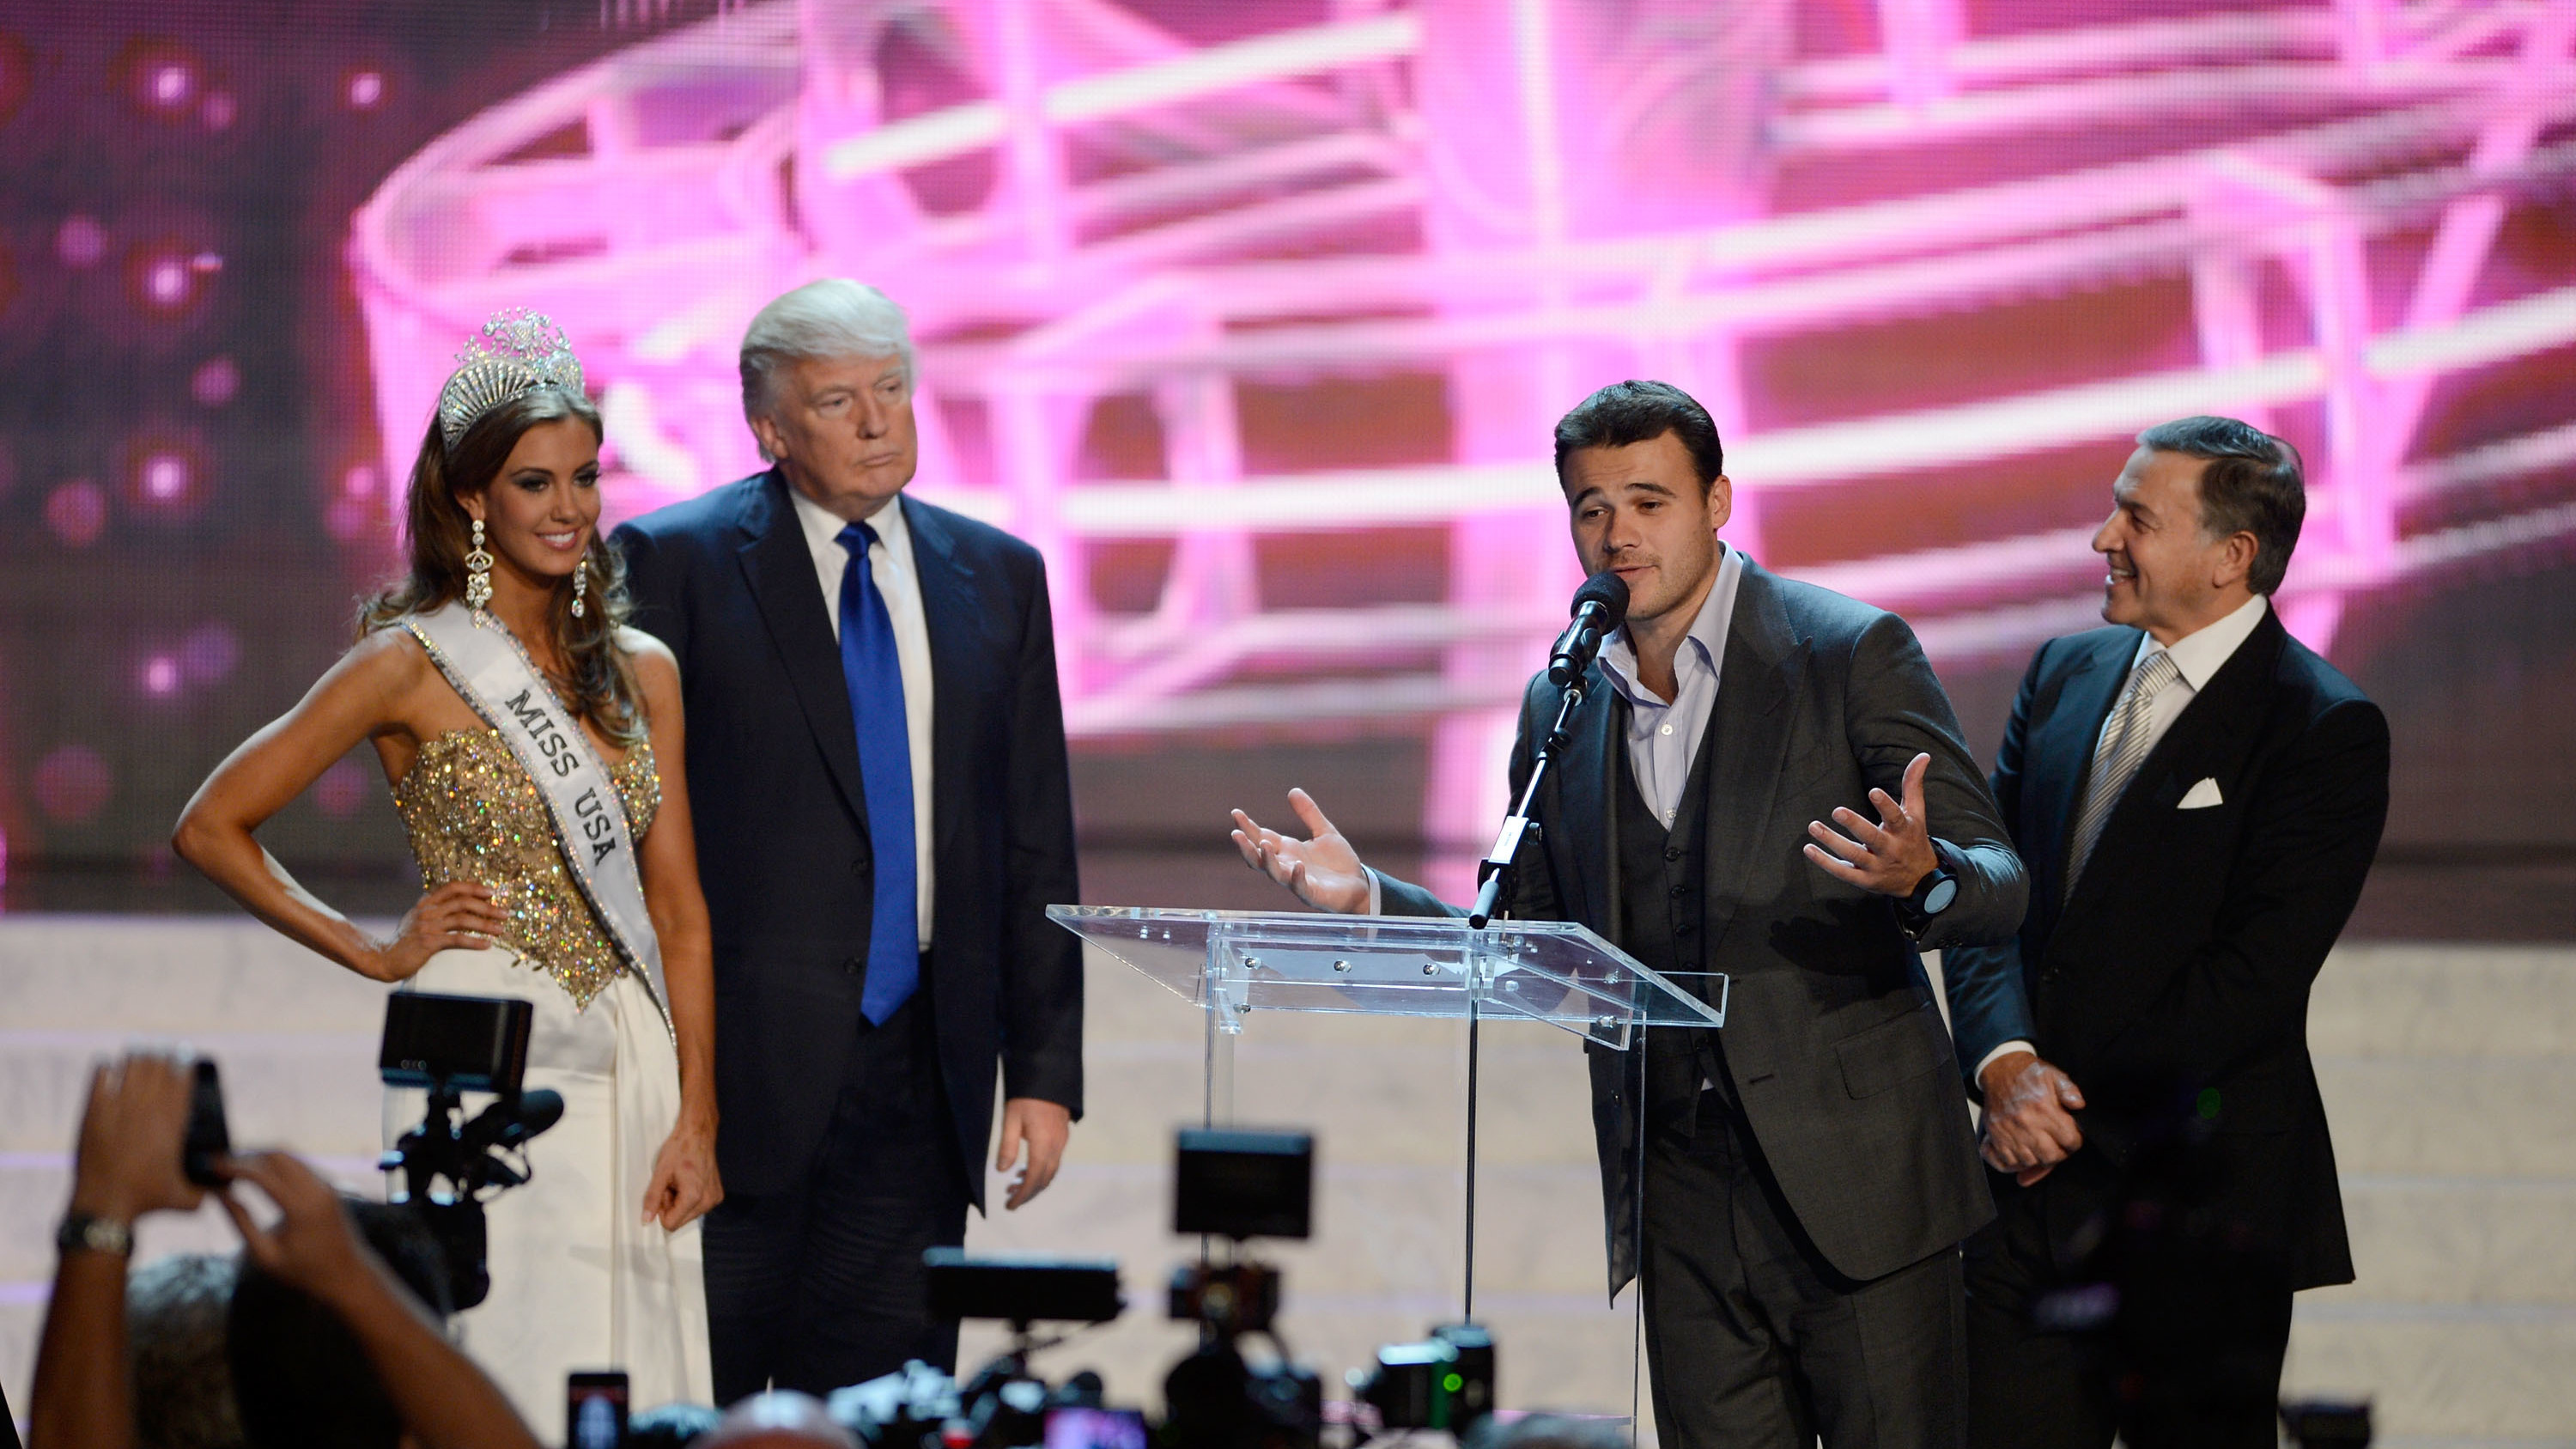 From left, Miss Connecticut USA Erin Brady and Donald Trump look on as Russian singer Emin Agalarov speaks onstage with his father Aras Agalarov during a news conference after Brady won the Miss USA 2013 pageant on June 16, 2013, in Las Vegas.